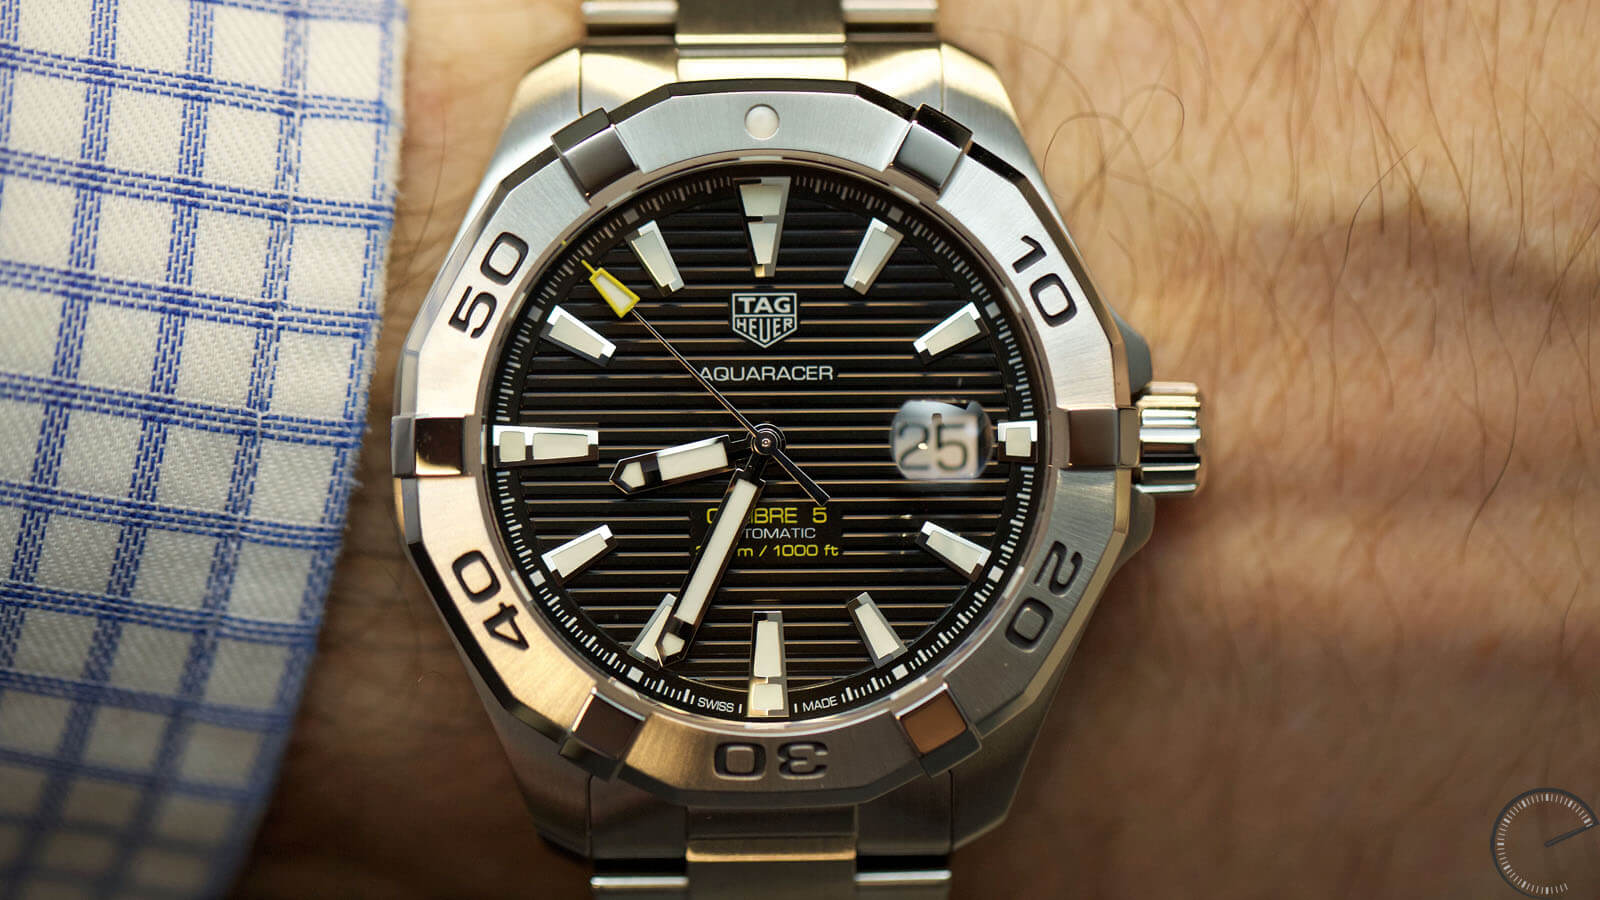 Articlestag Heuer Aquaracer 300m Calibre 5 Steel Bezel 43mm Ref Way2012 Ba0927 Html together with 1976 Triumph Tr6 Pictures C14052 pi36360603 additionally Ac Stag 200 300 4 300isa2 400 further 170 Rohac Obecny Nejvetsi Brouk further Hz166c. on stag model 3